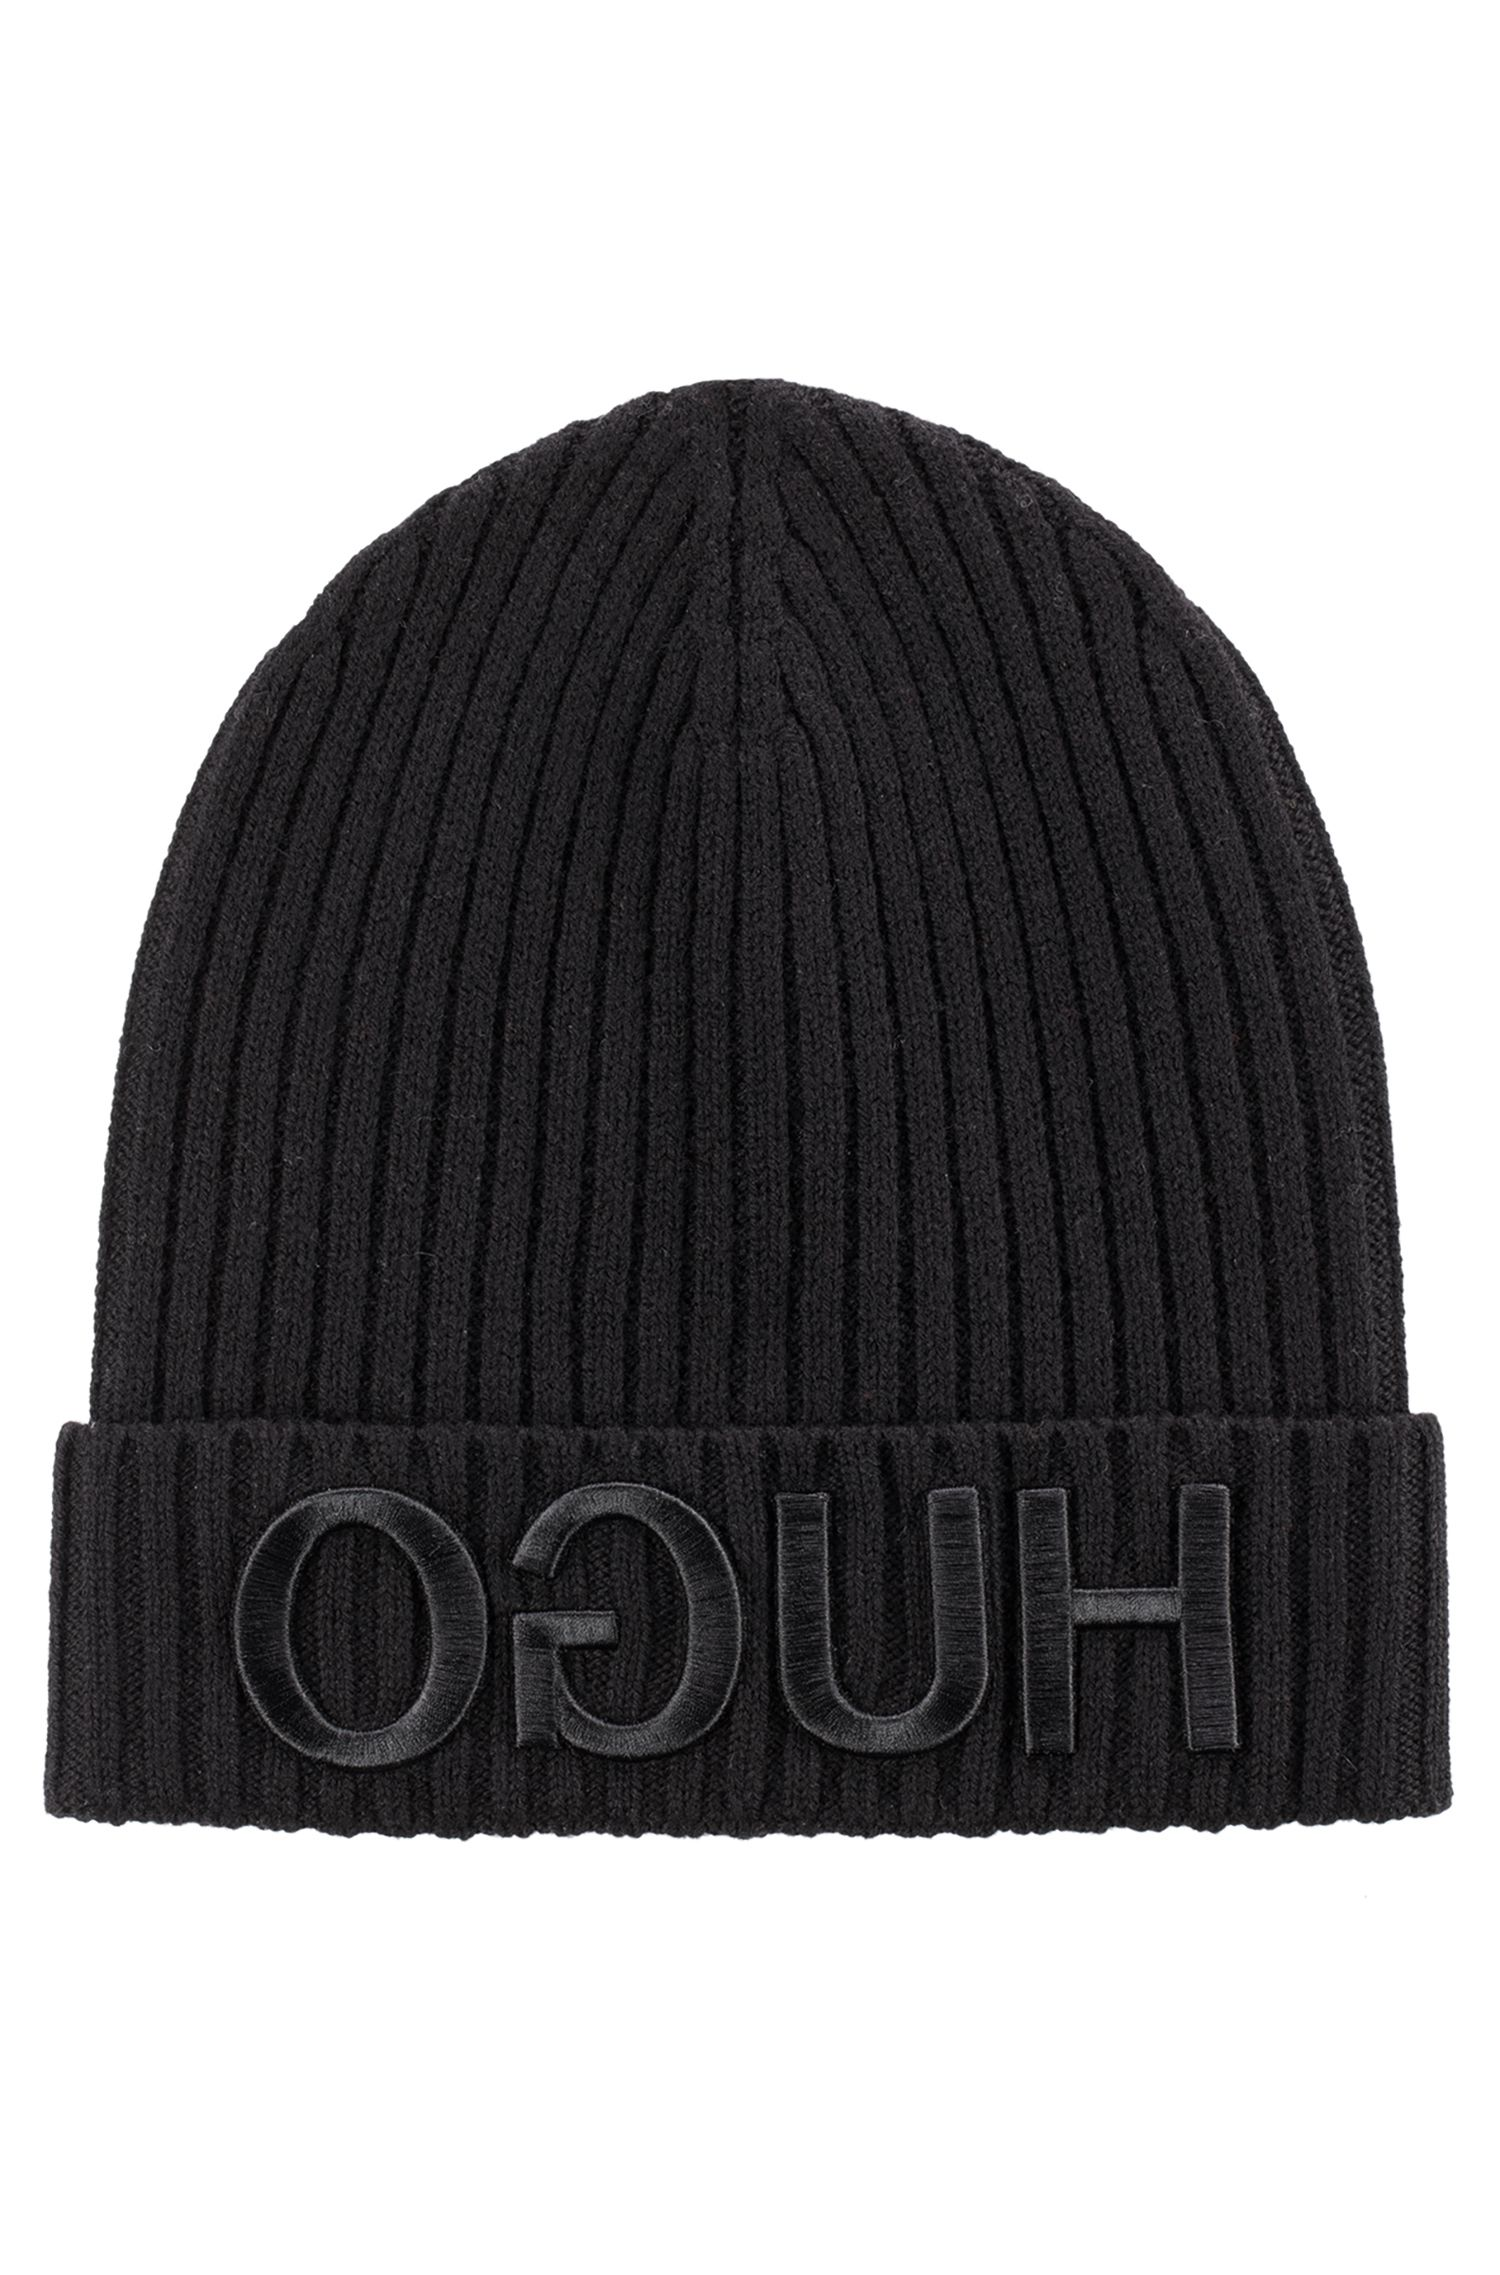 Unisex beanie hat in wool with reverse logo, Black